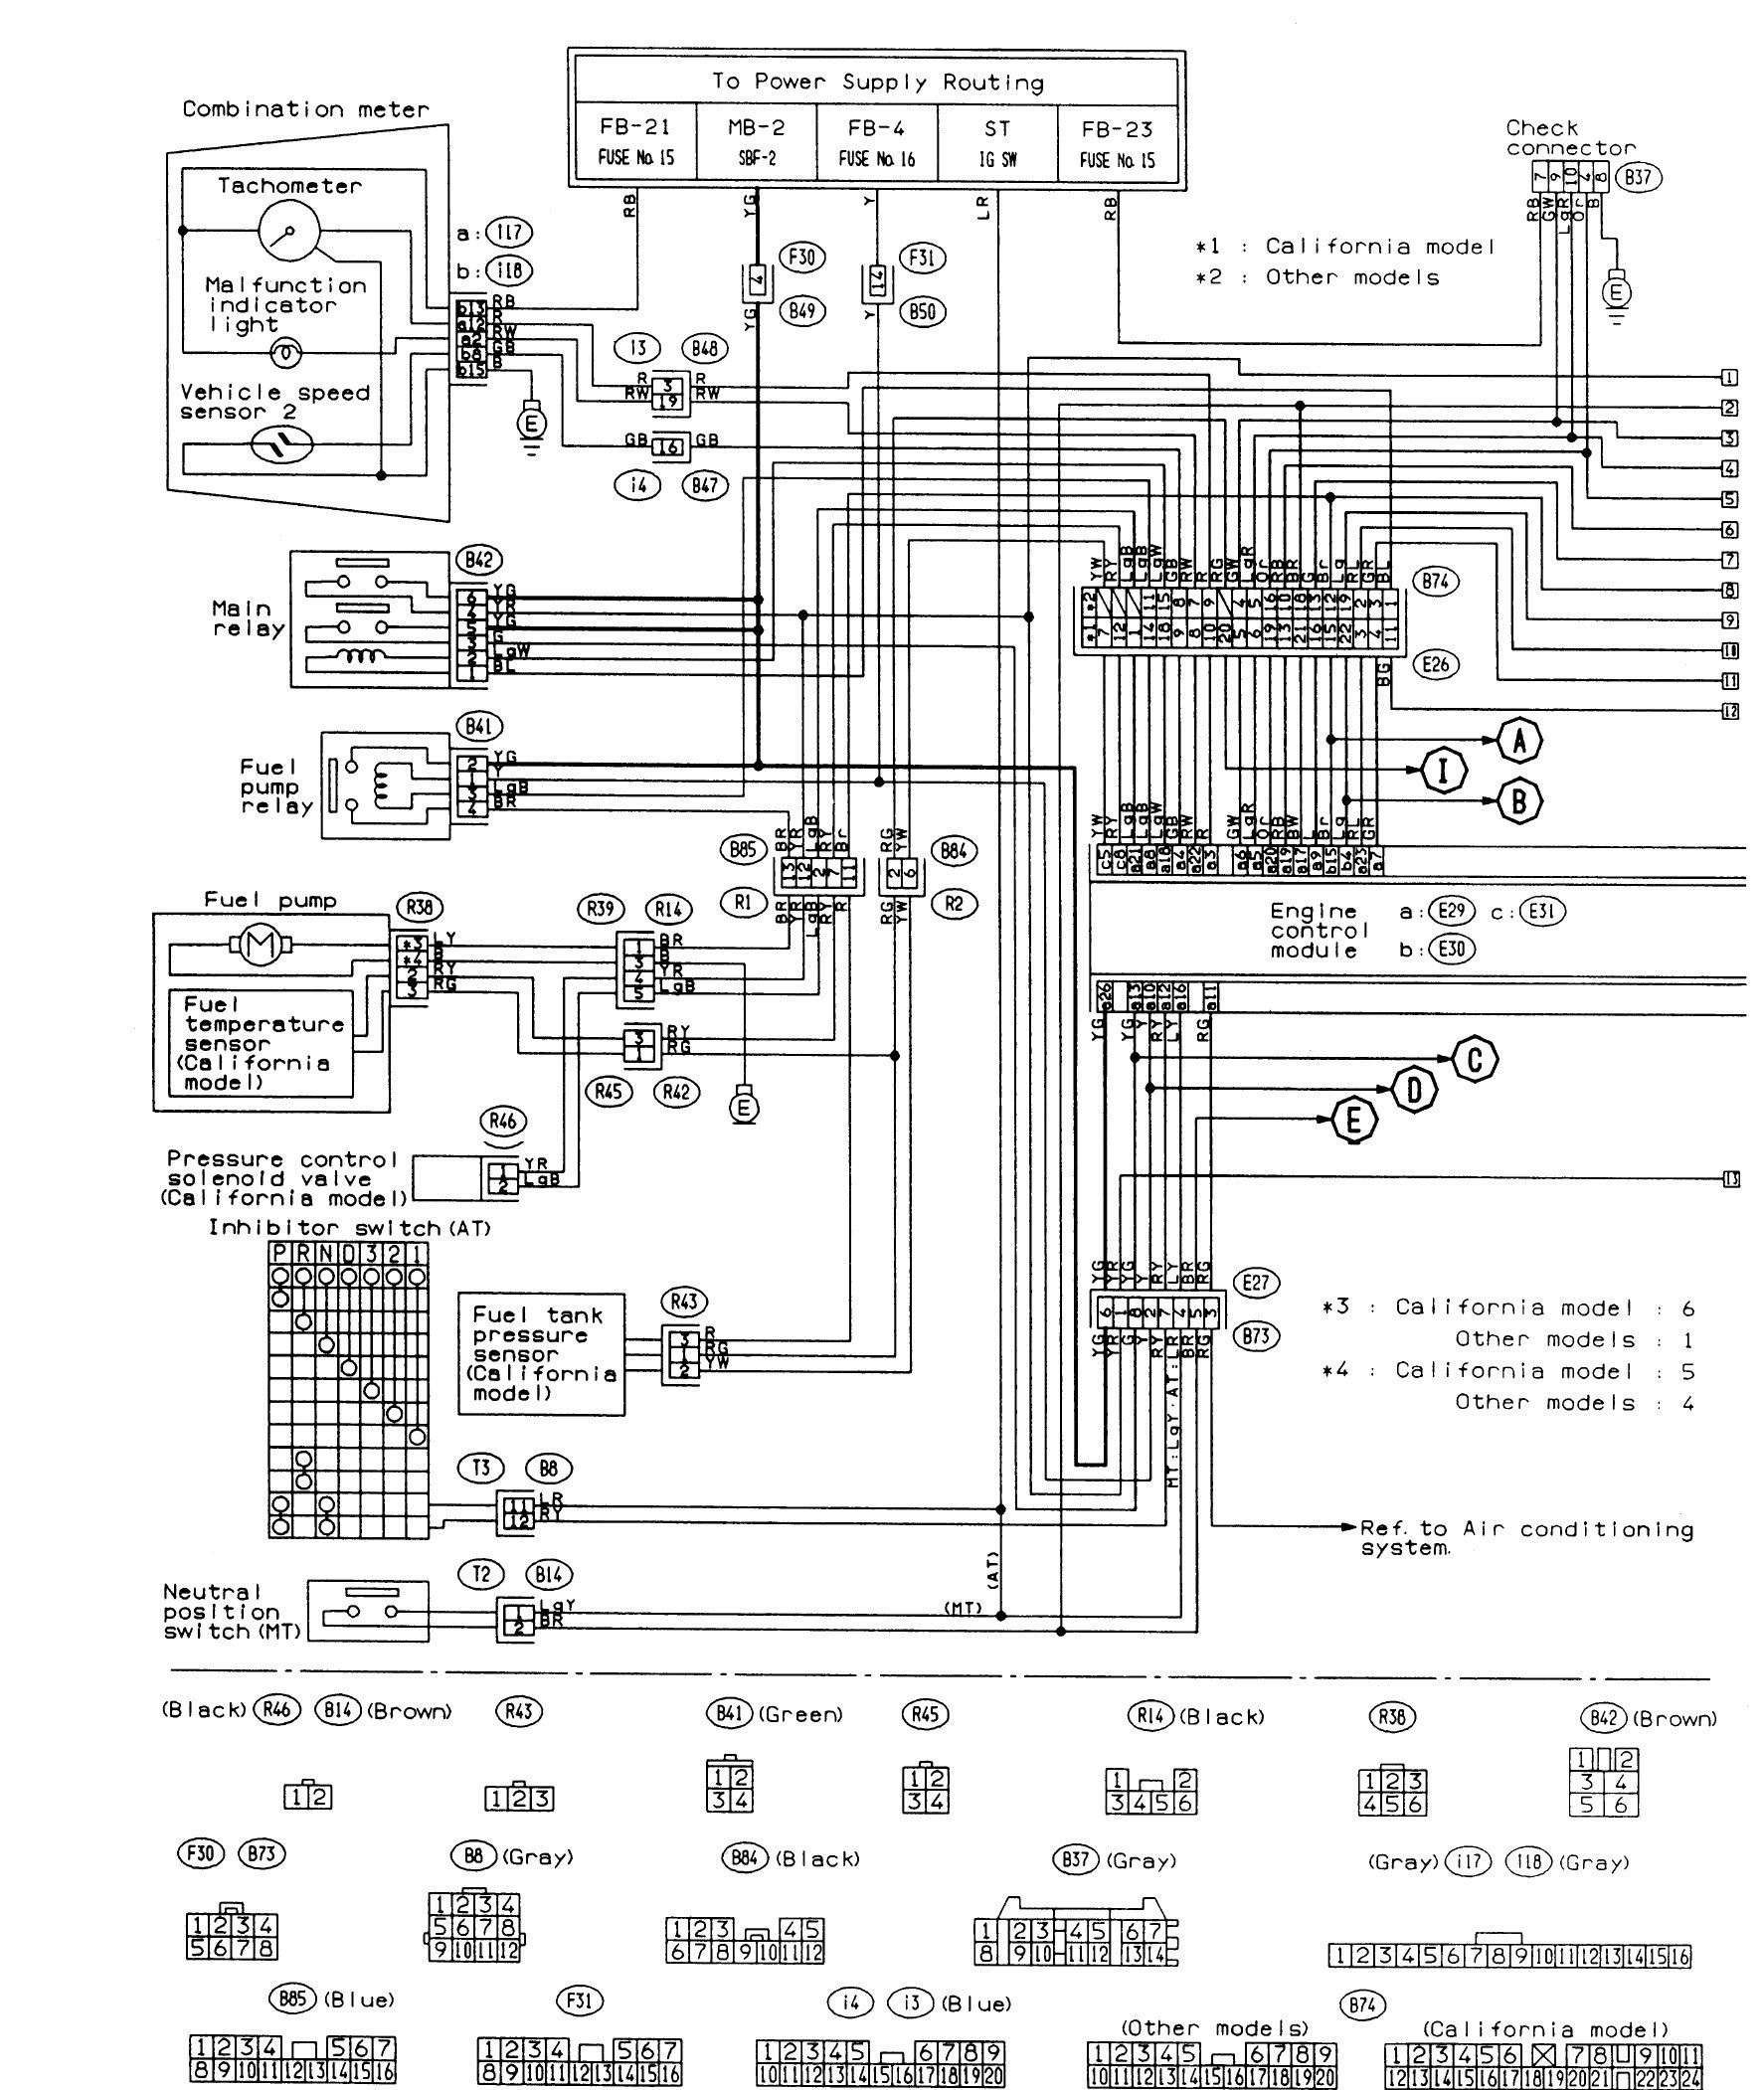 Wrx Headlight Wiring Diagram - 1967 Honda S90 Wiring Headlight for Wiring  Diagram Schematics | 99 Subaru Impreza Headlight Wiring Diagram |  | Wiring Diagram Schematics